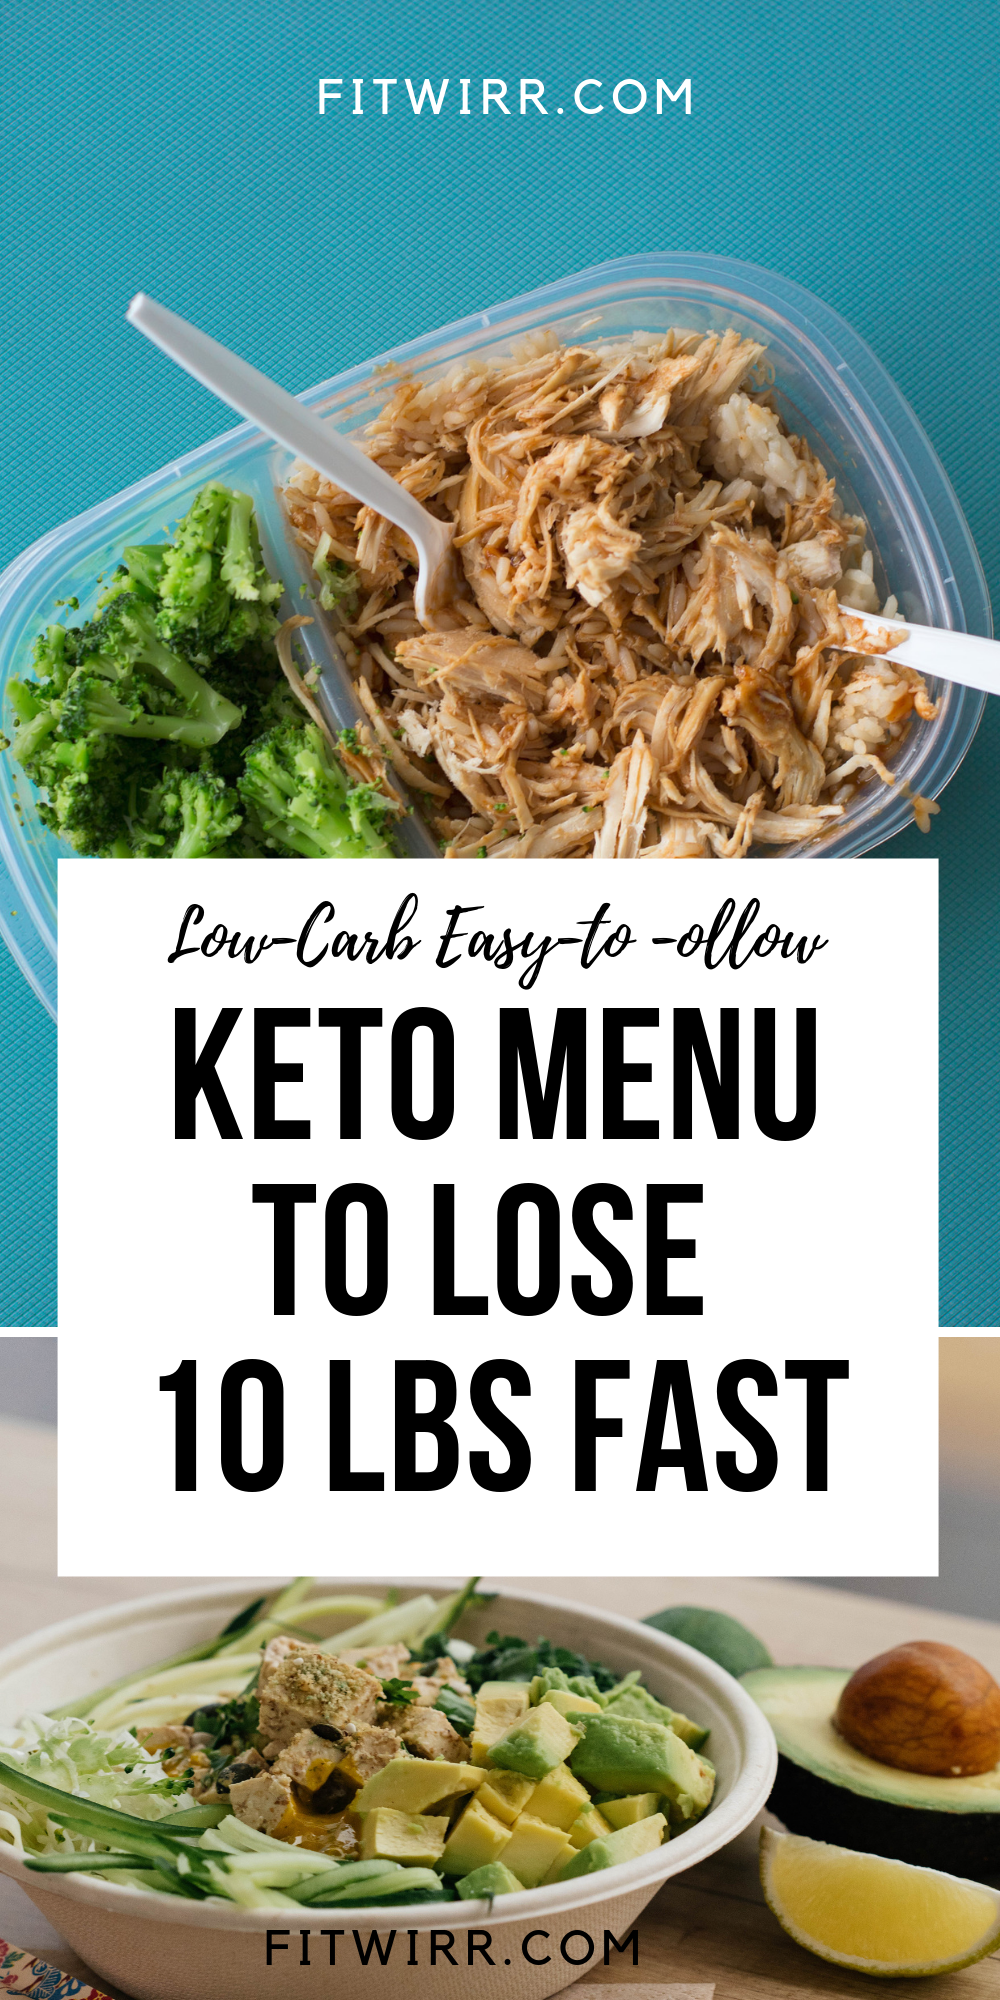 Keto Diet Menu: 7-Day Keto Meal Plan for Beginners images